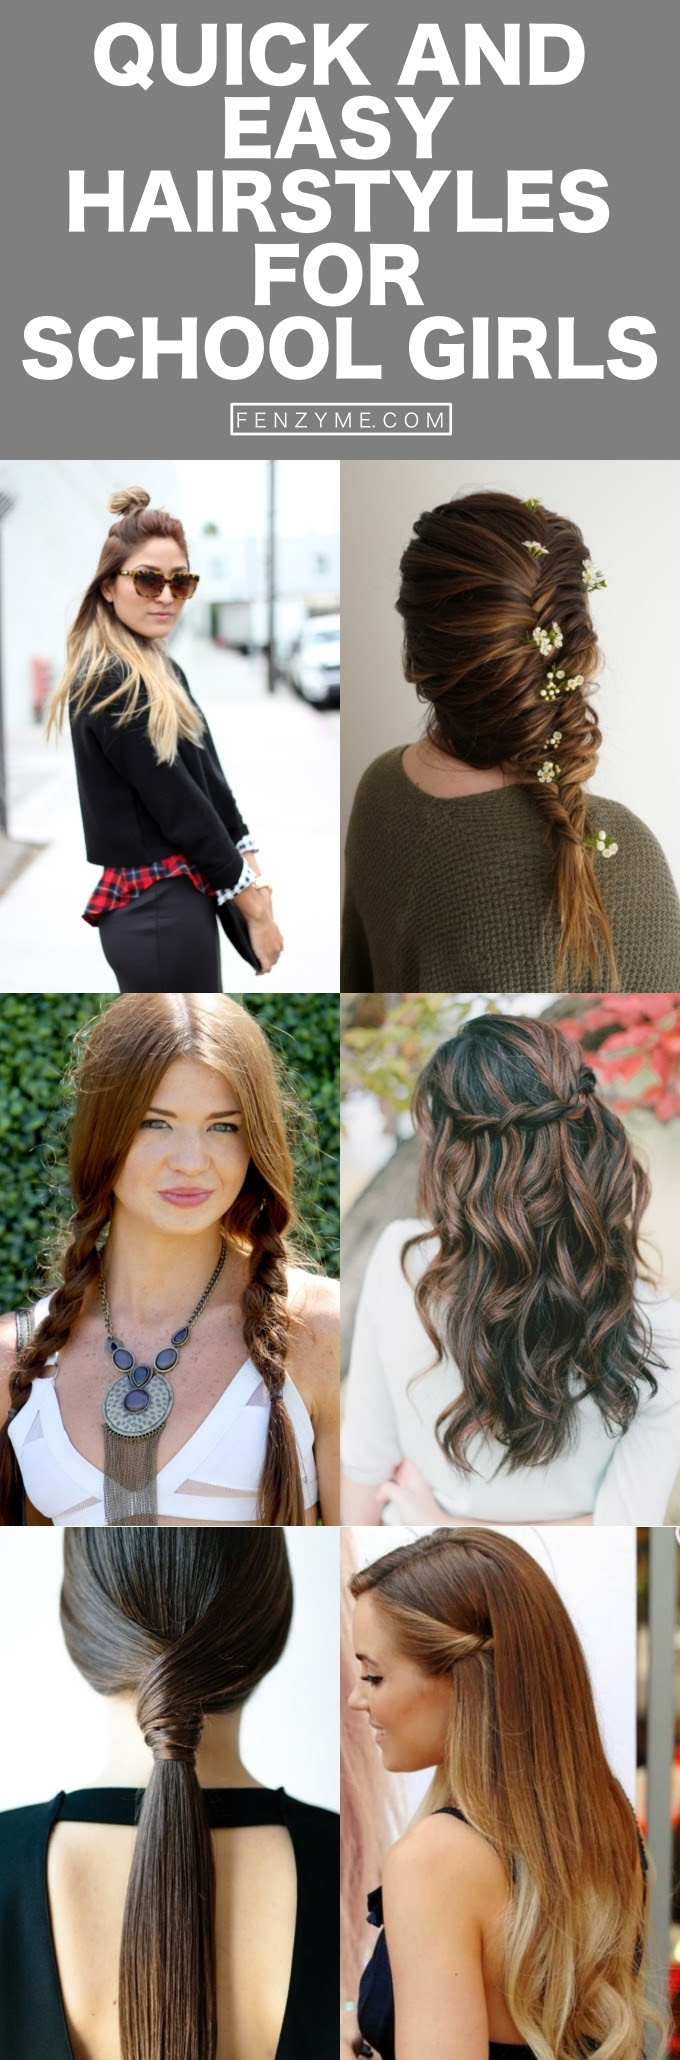 Hairstyles For Girls For School 46